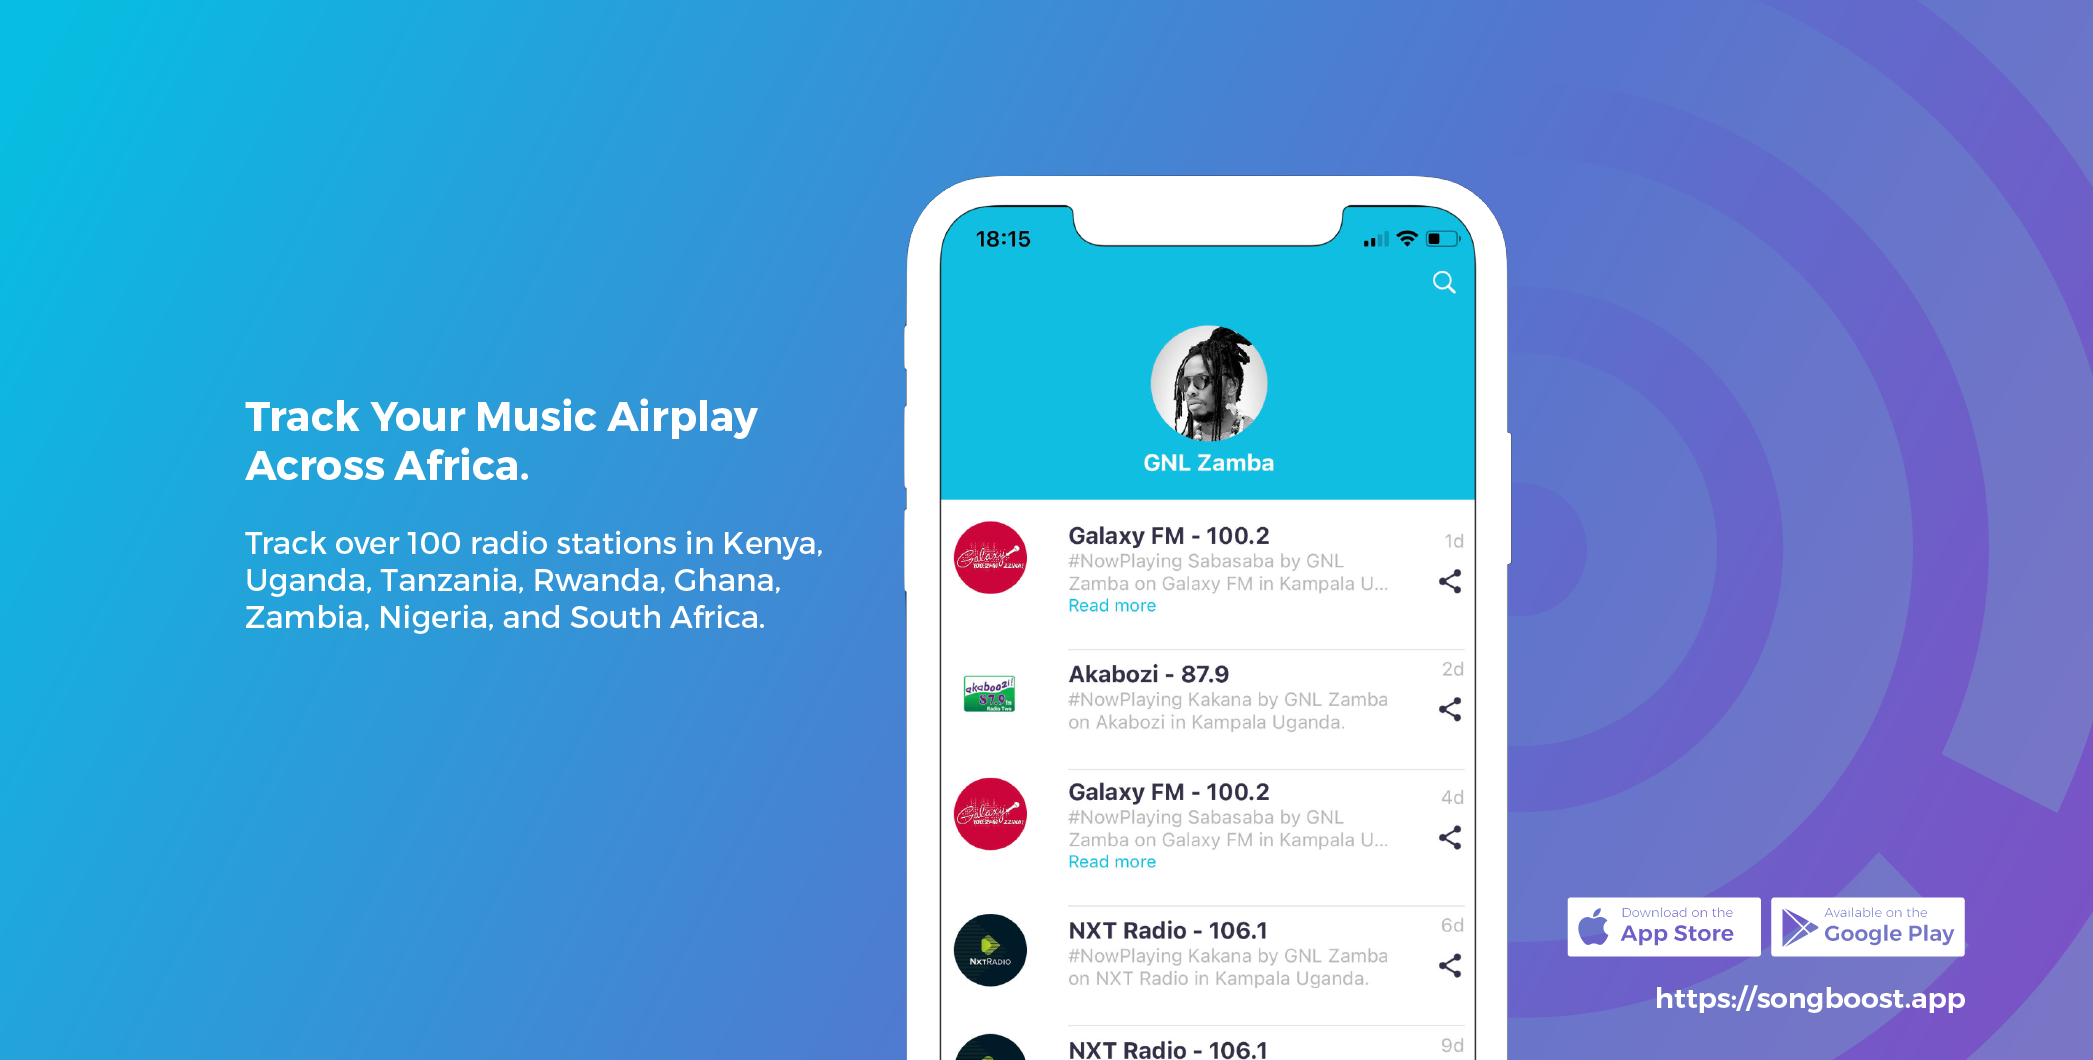 Track Your Music Airplay Across Africa: SongBoost App